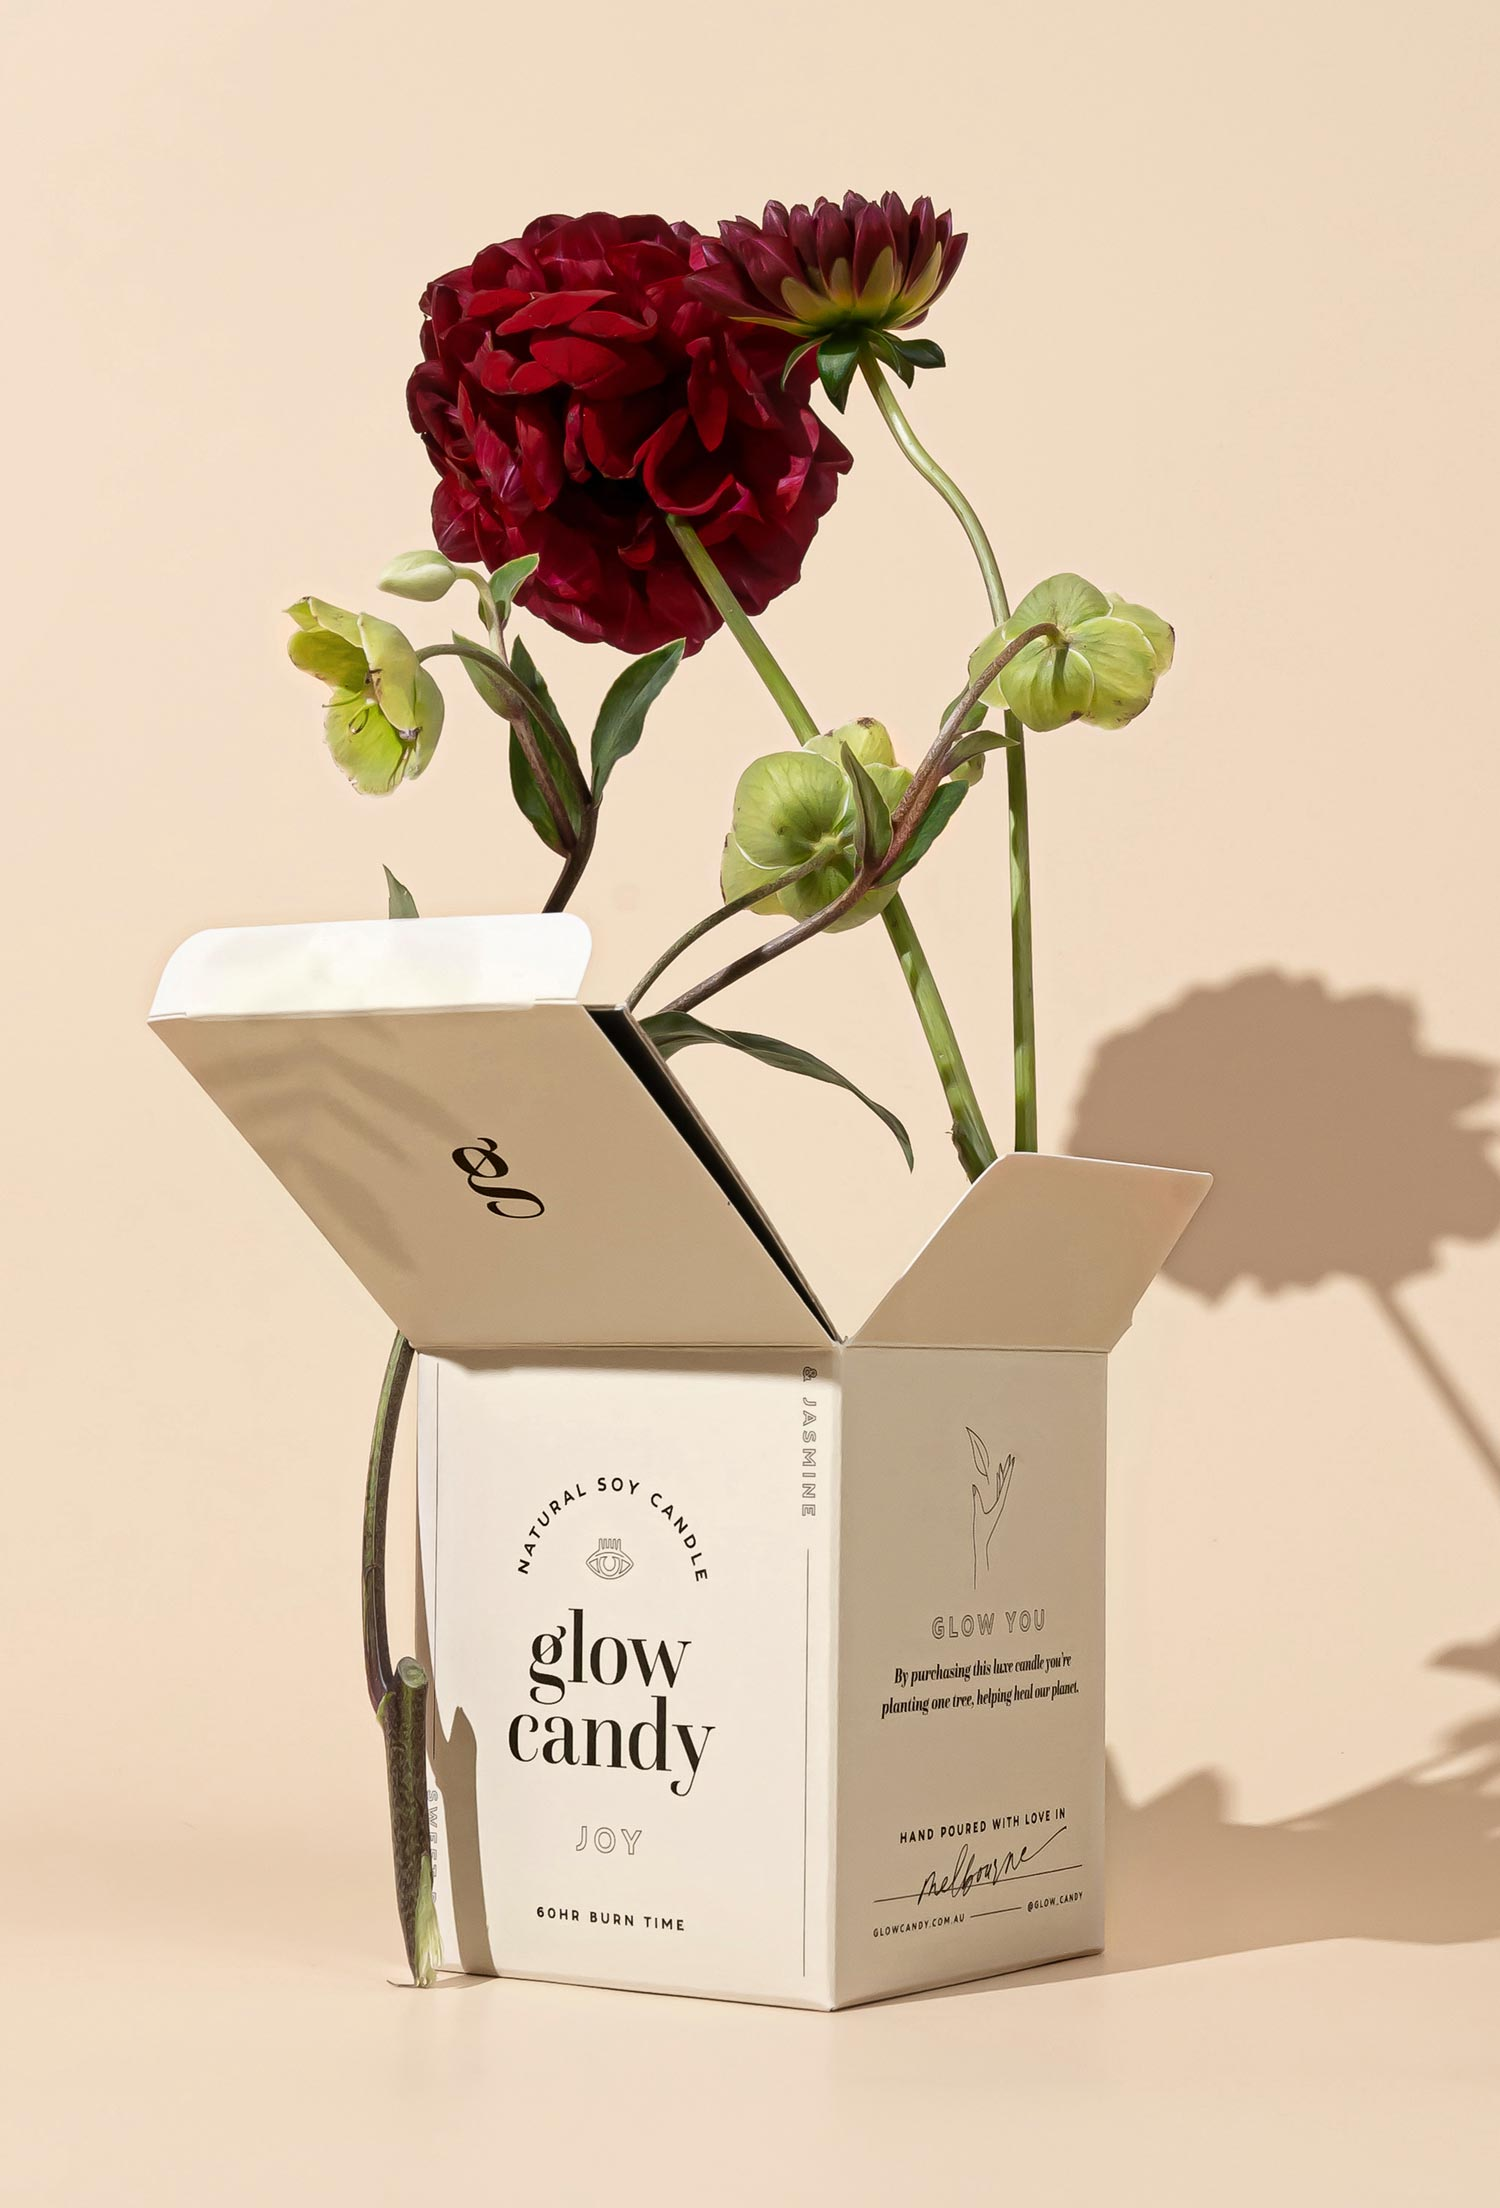 The outer box packaging for Glow Candy's 'Joy' scented candle, photographed in a studio with a rose in the box and a stark shadow behind it.